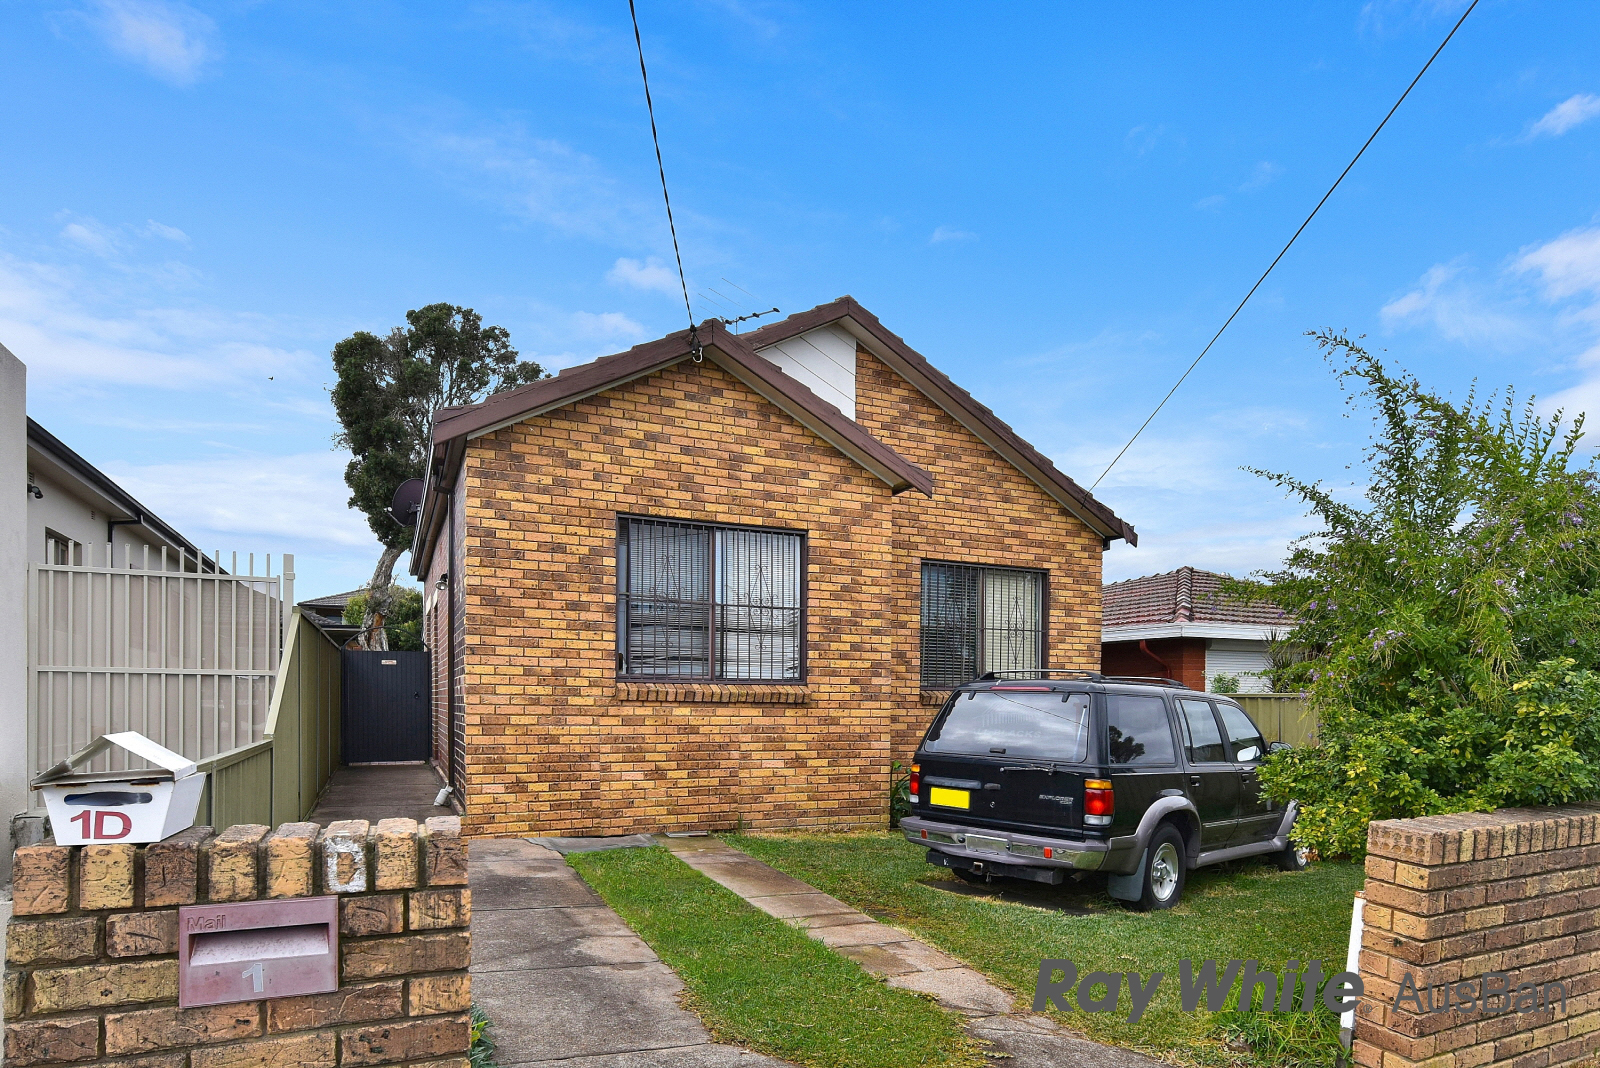 At 1 Eulda Street, Belmore, optimistic investors pushed a five-bedroom rental house with a granny flat to $980,000 – $90,000 above reserve.